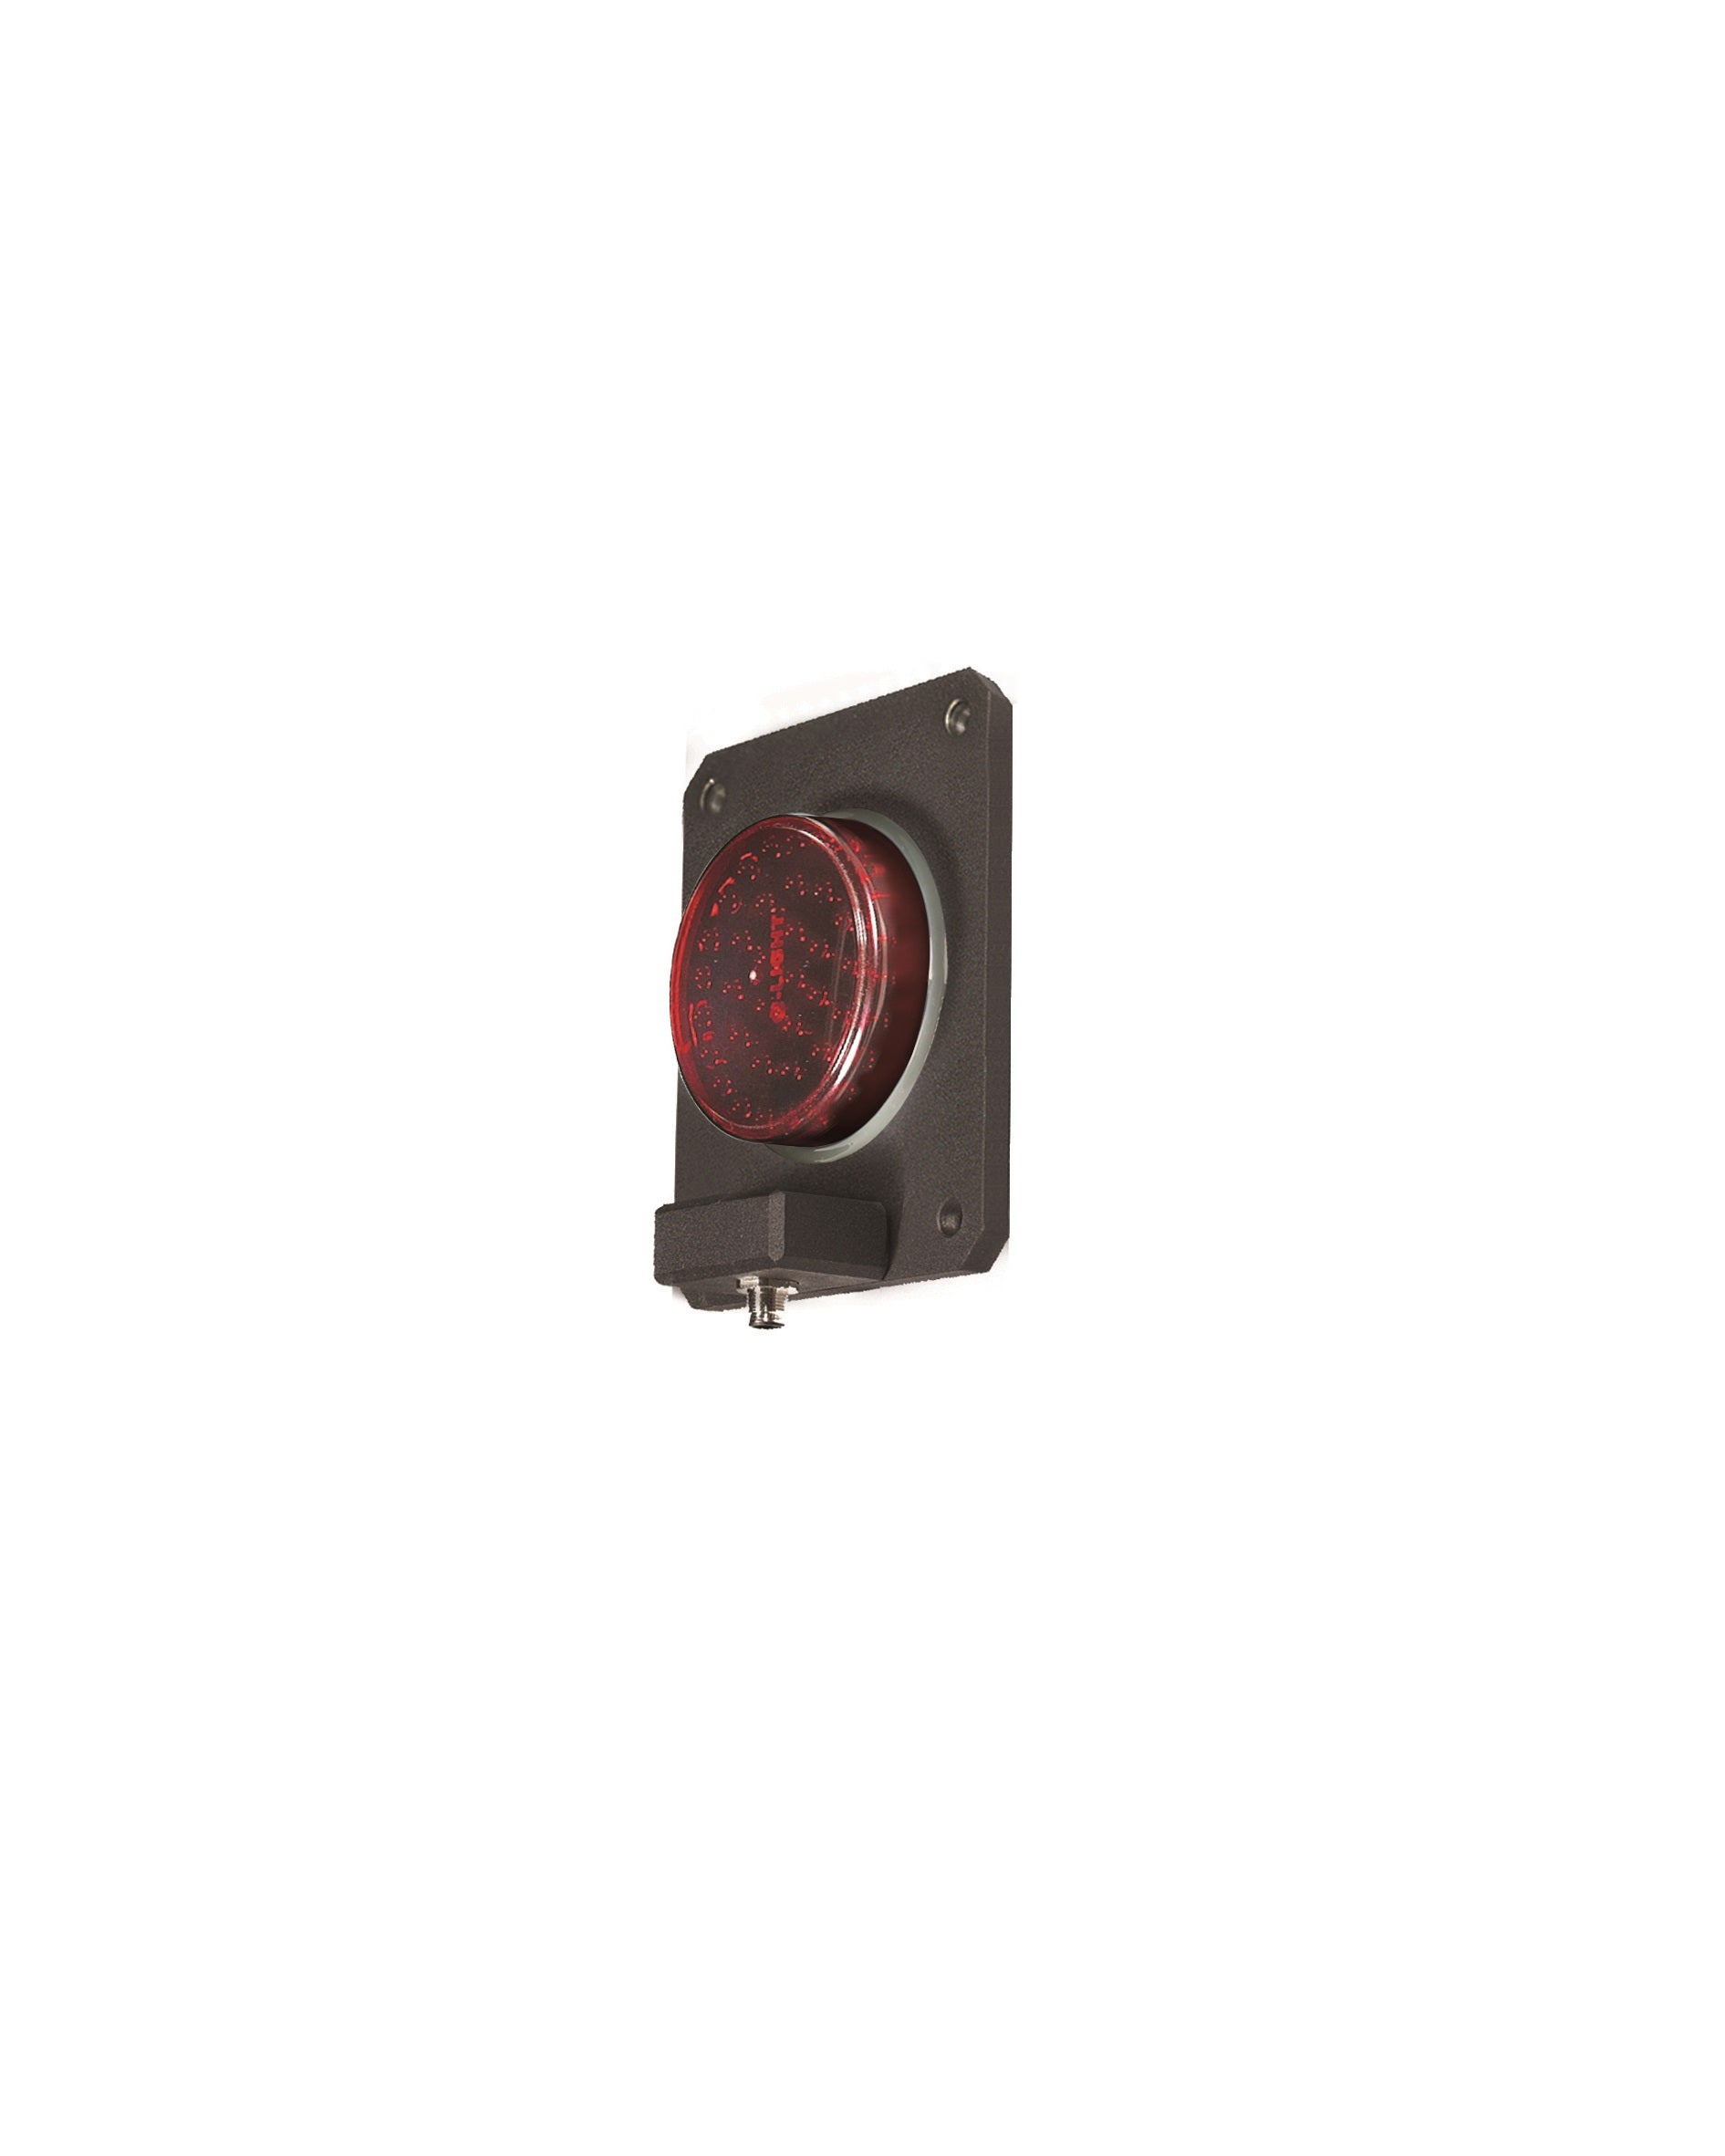 Qlight Qlight SSL100M 1 Aspect 92mm Surface Mount IP68 Metal Body LED Traffic Light - BNR Industrial